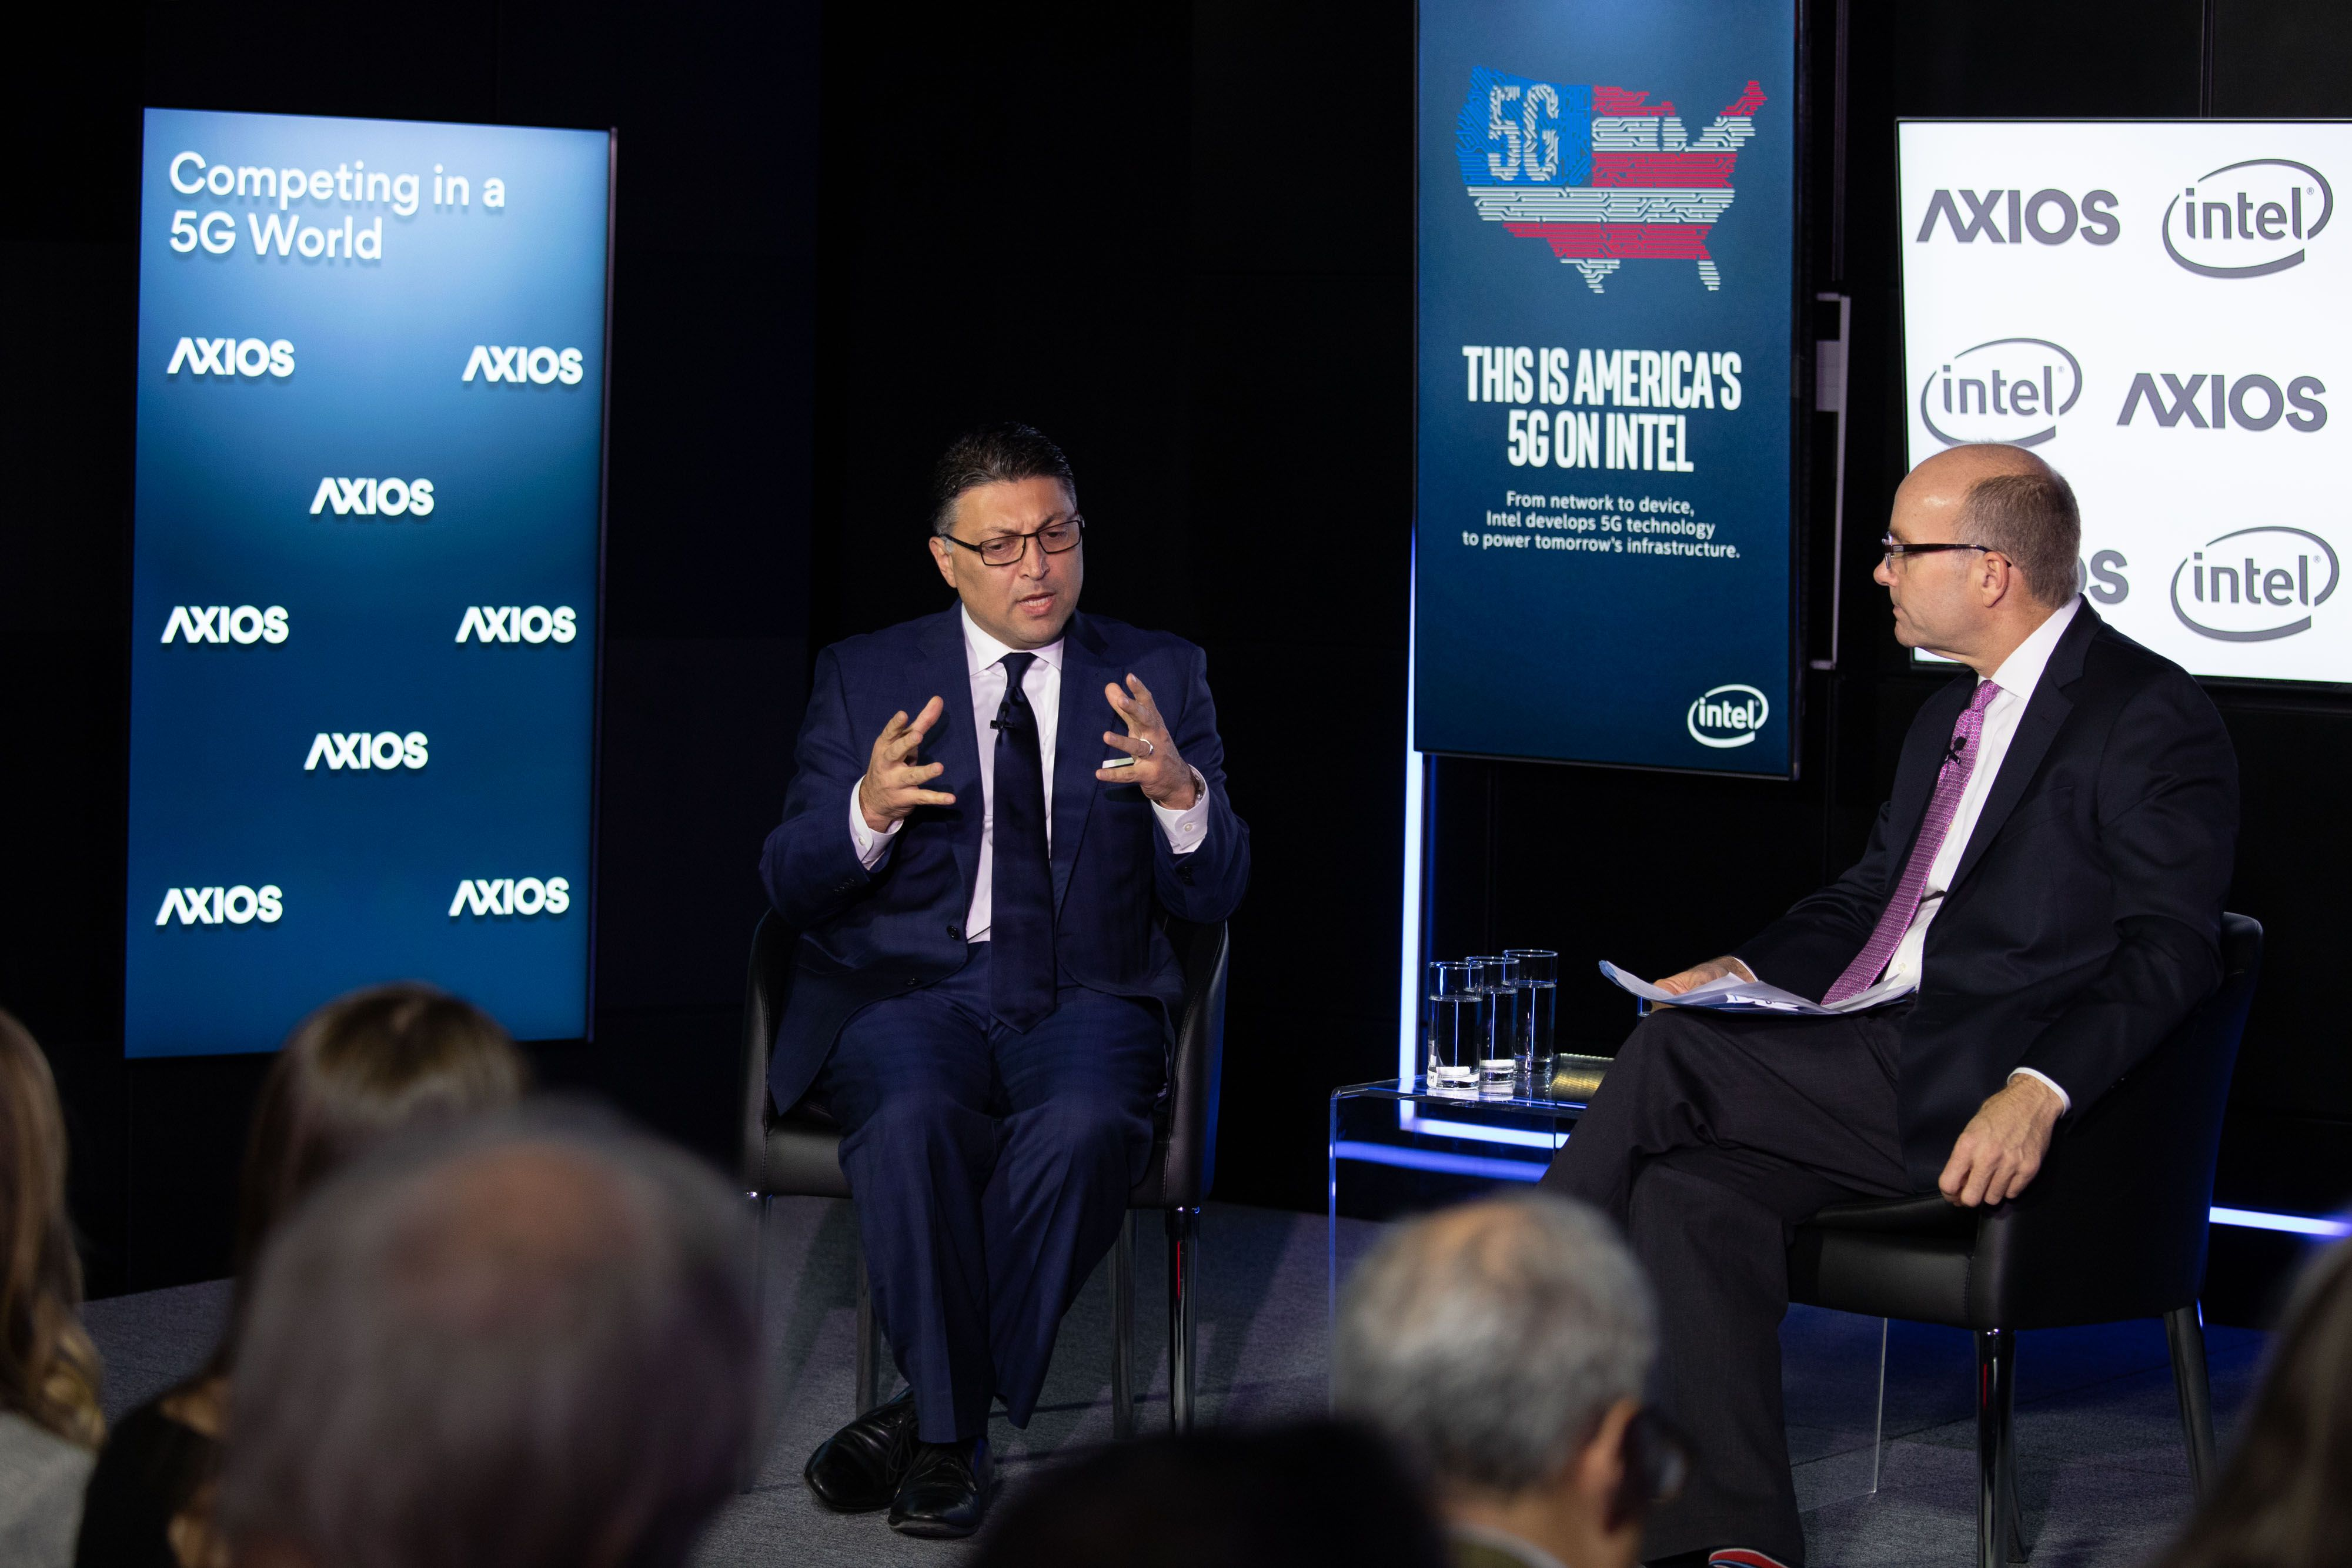 Antitrust Chief Makan Delrahim and Mike Allen on the Axios stage